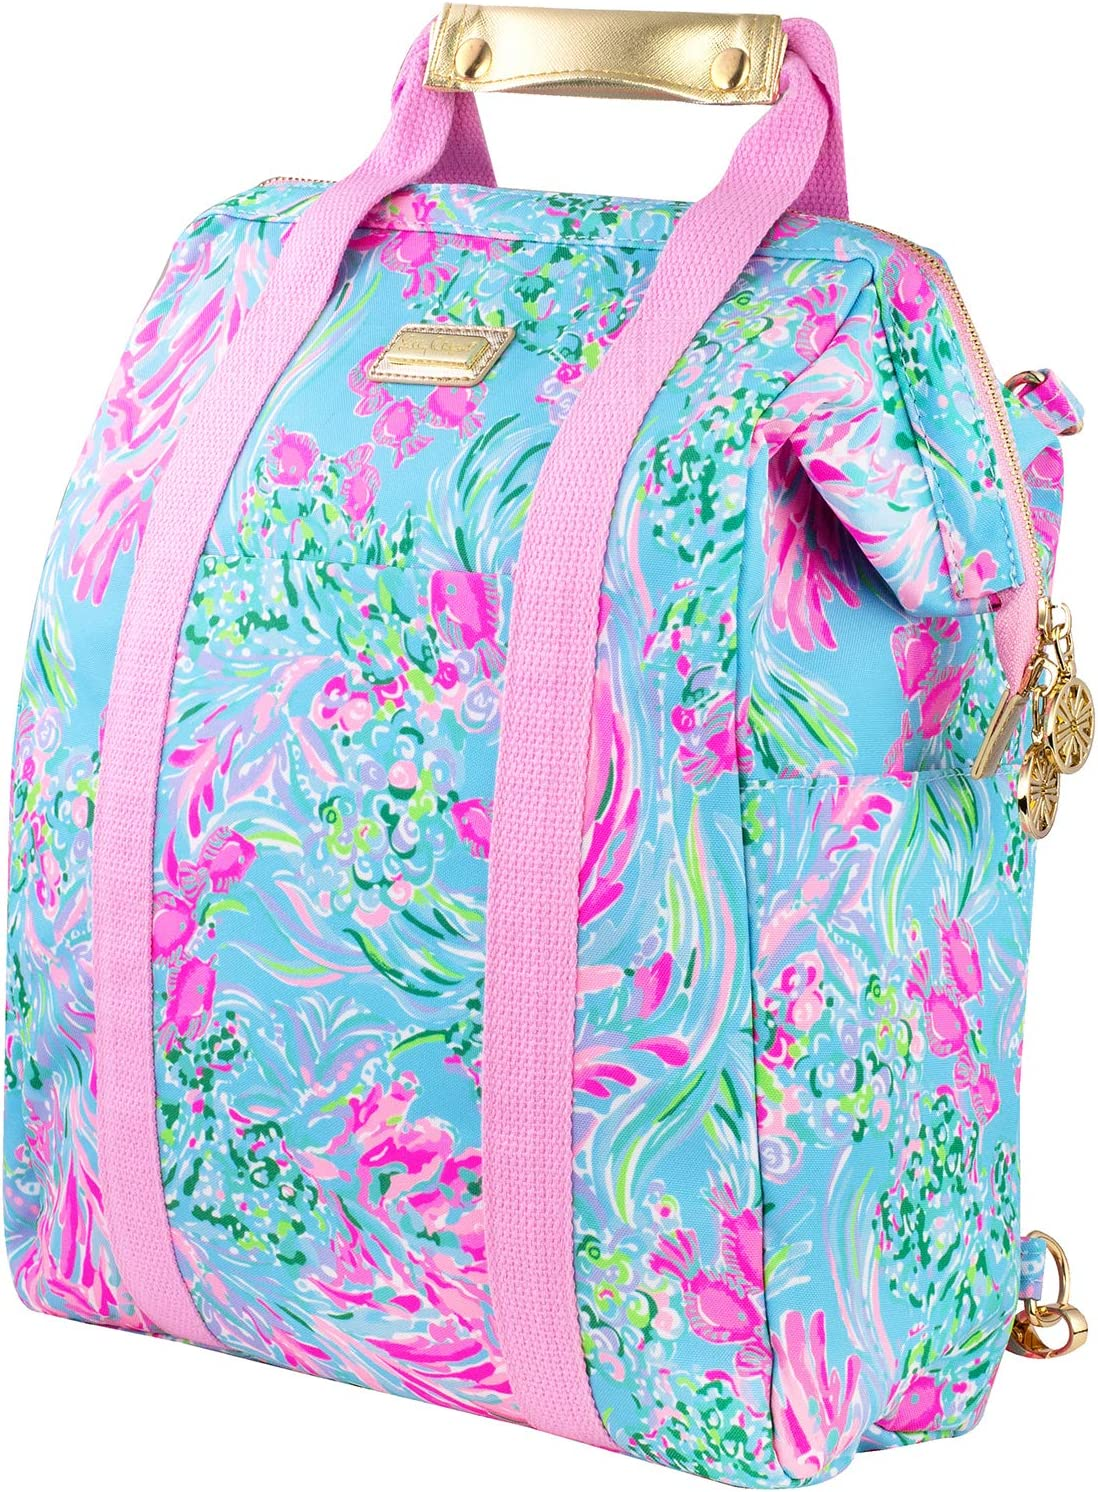 Lilly Pulitzer Insulted Backpack Cooler Large Capacity, Pink/Blue Portable Soft Cooler Bag for Picnics, Beach, Pool, Hiking, Best Fishes